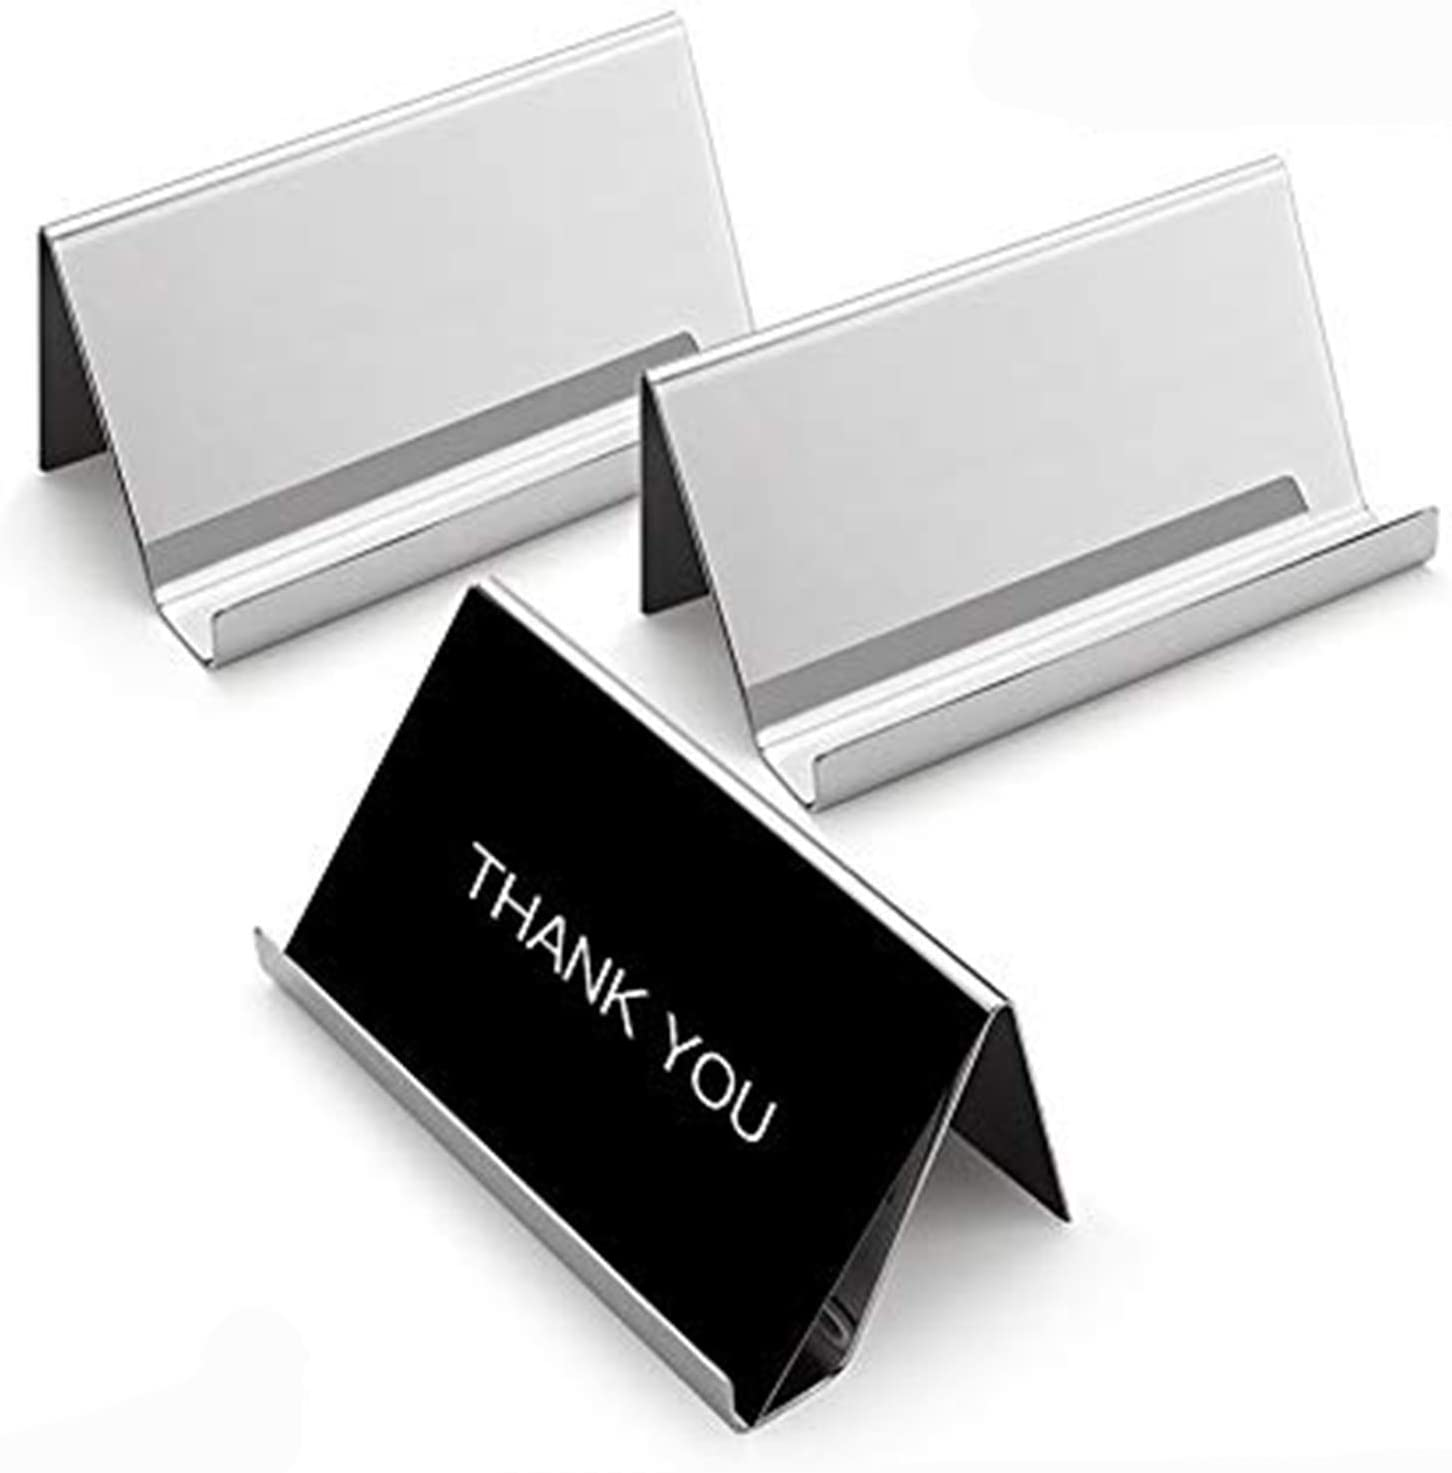 Sooez Business Card Holders Stand for Desk, 20 Pack Office Stainless Steel  Business Card Table Top Display Stand Metal Name Card Holder Desktop ...